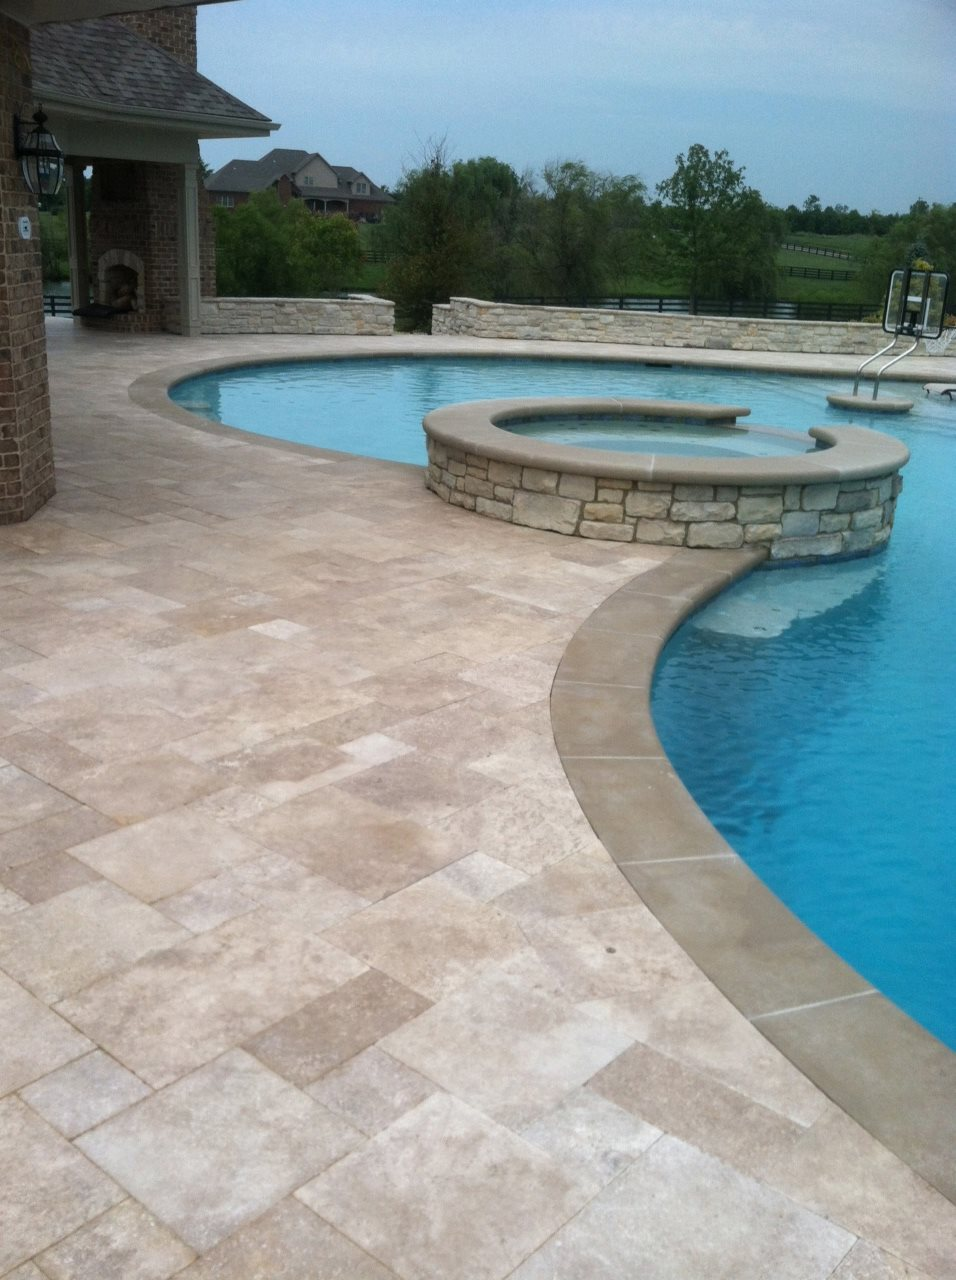 Pool decks pool design swimming pool builder dayton oh for Uses for old swimming pools